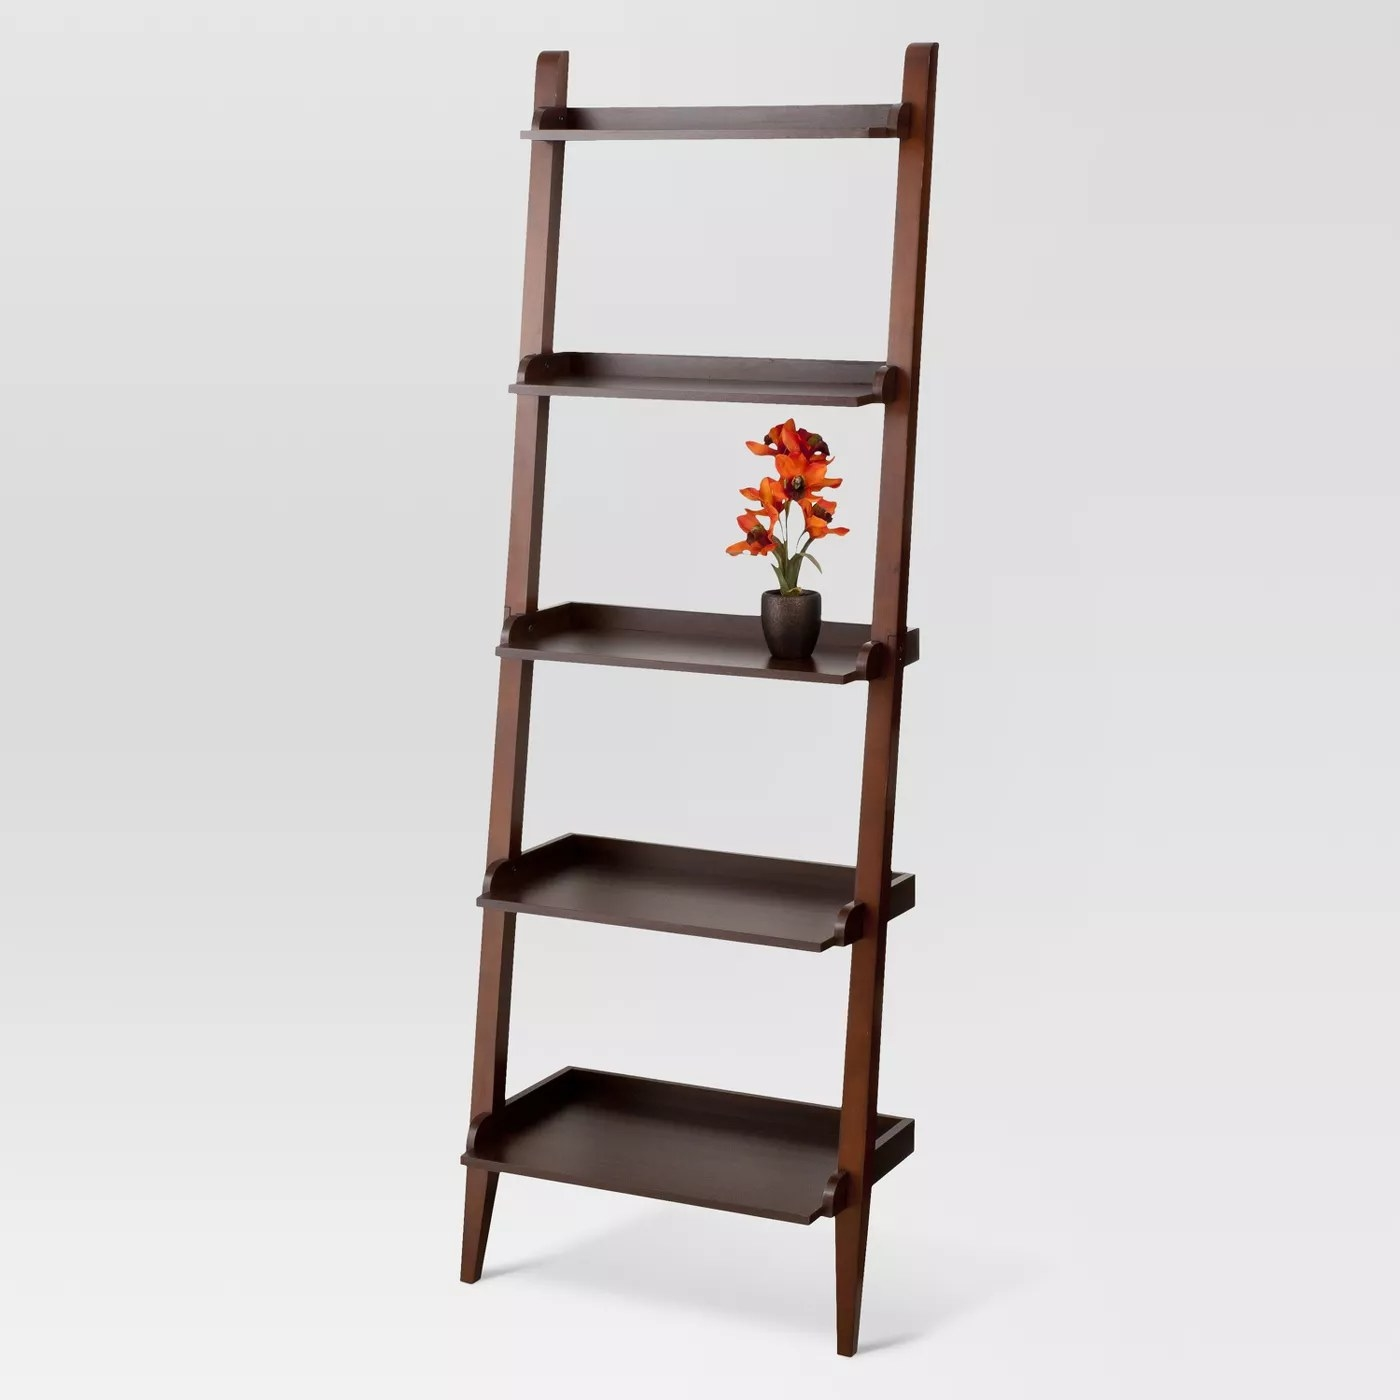 A leaning bookcase